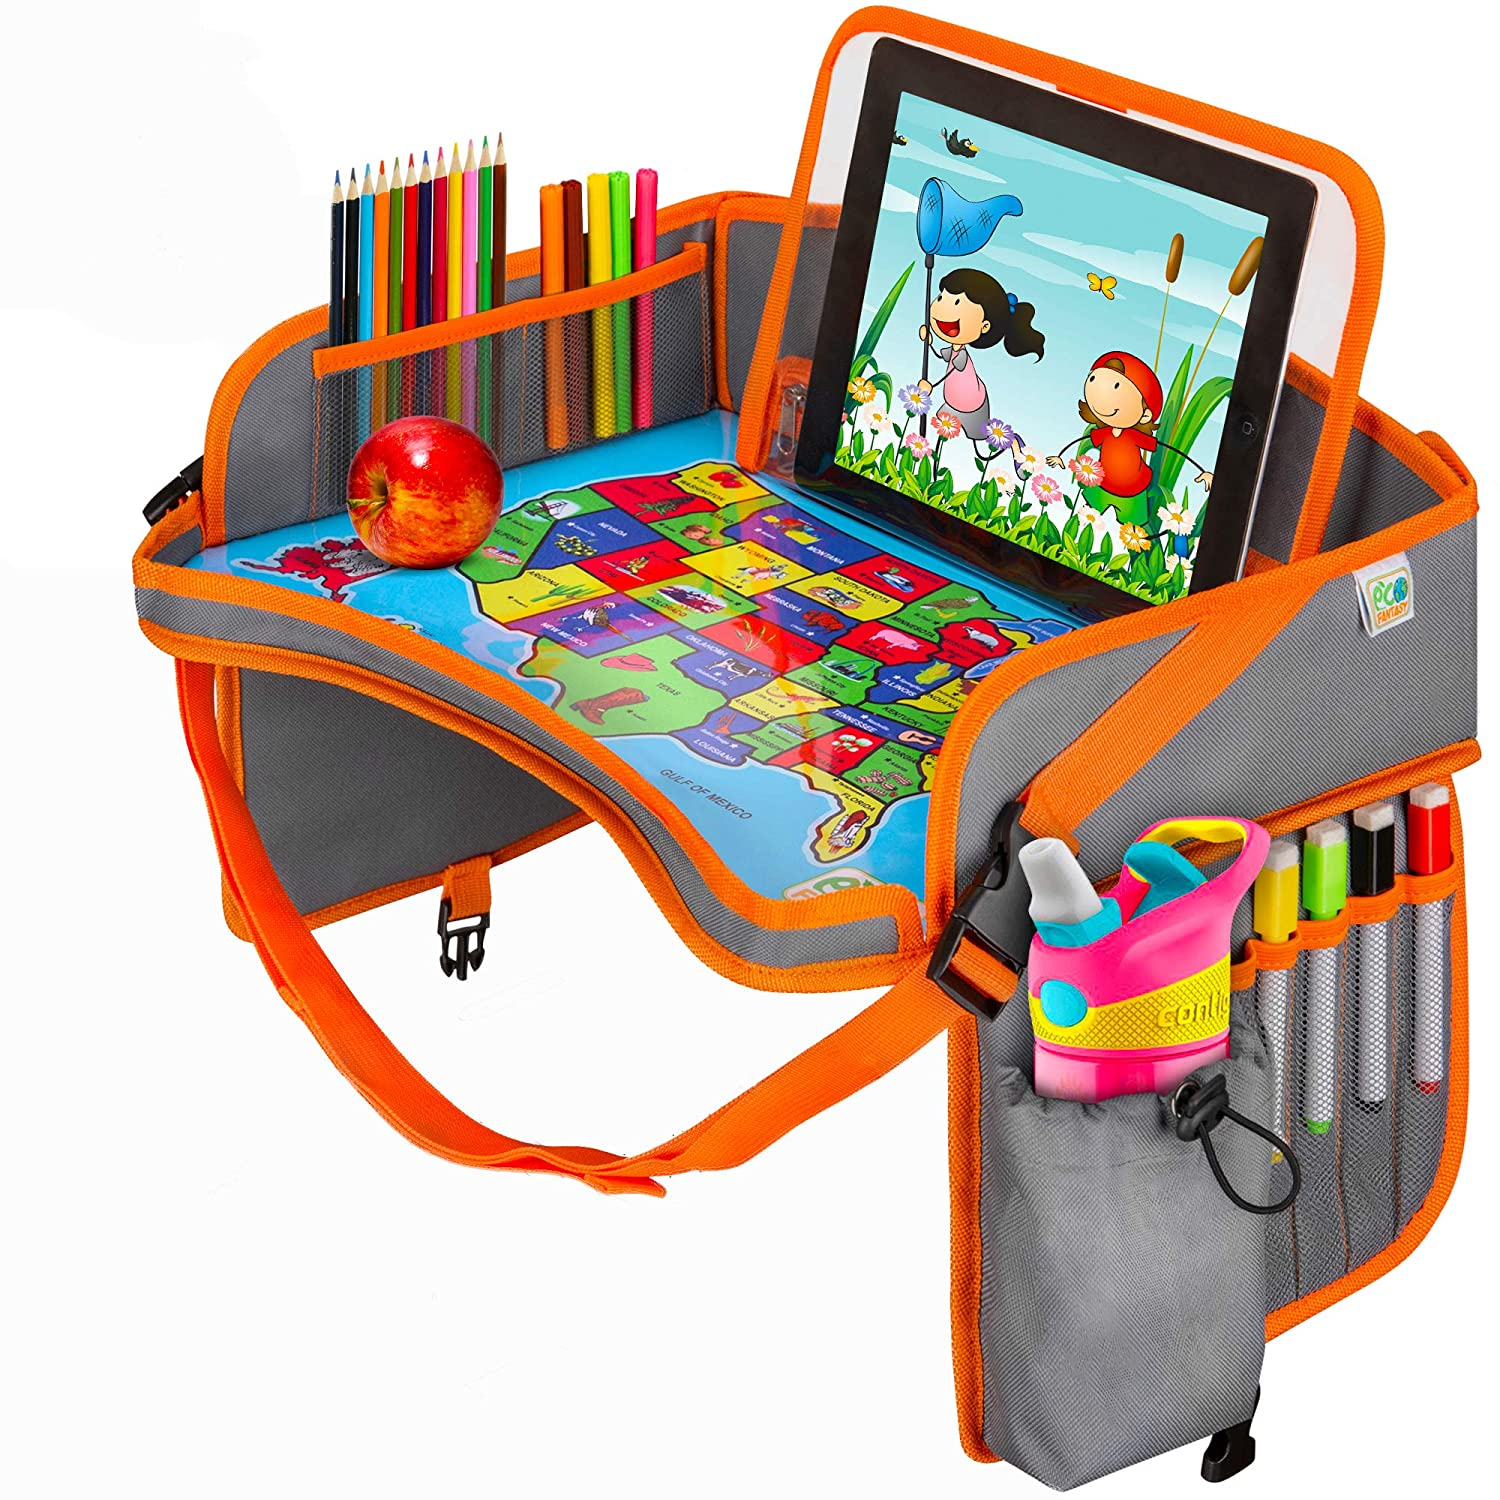 Portable Car Seat Tray Foldable Dry Erase Tray with Markers Snack Eating Tray iPad//Tablet Holder MyLapDesks Kids Travel Tray Activity Storage Lap Desk for Kids